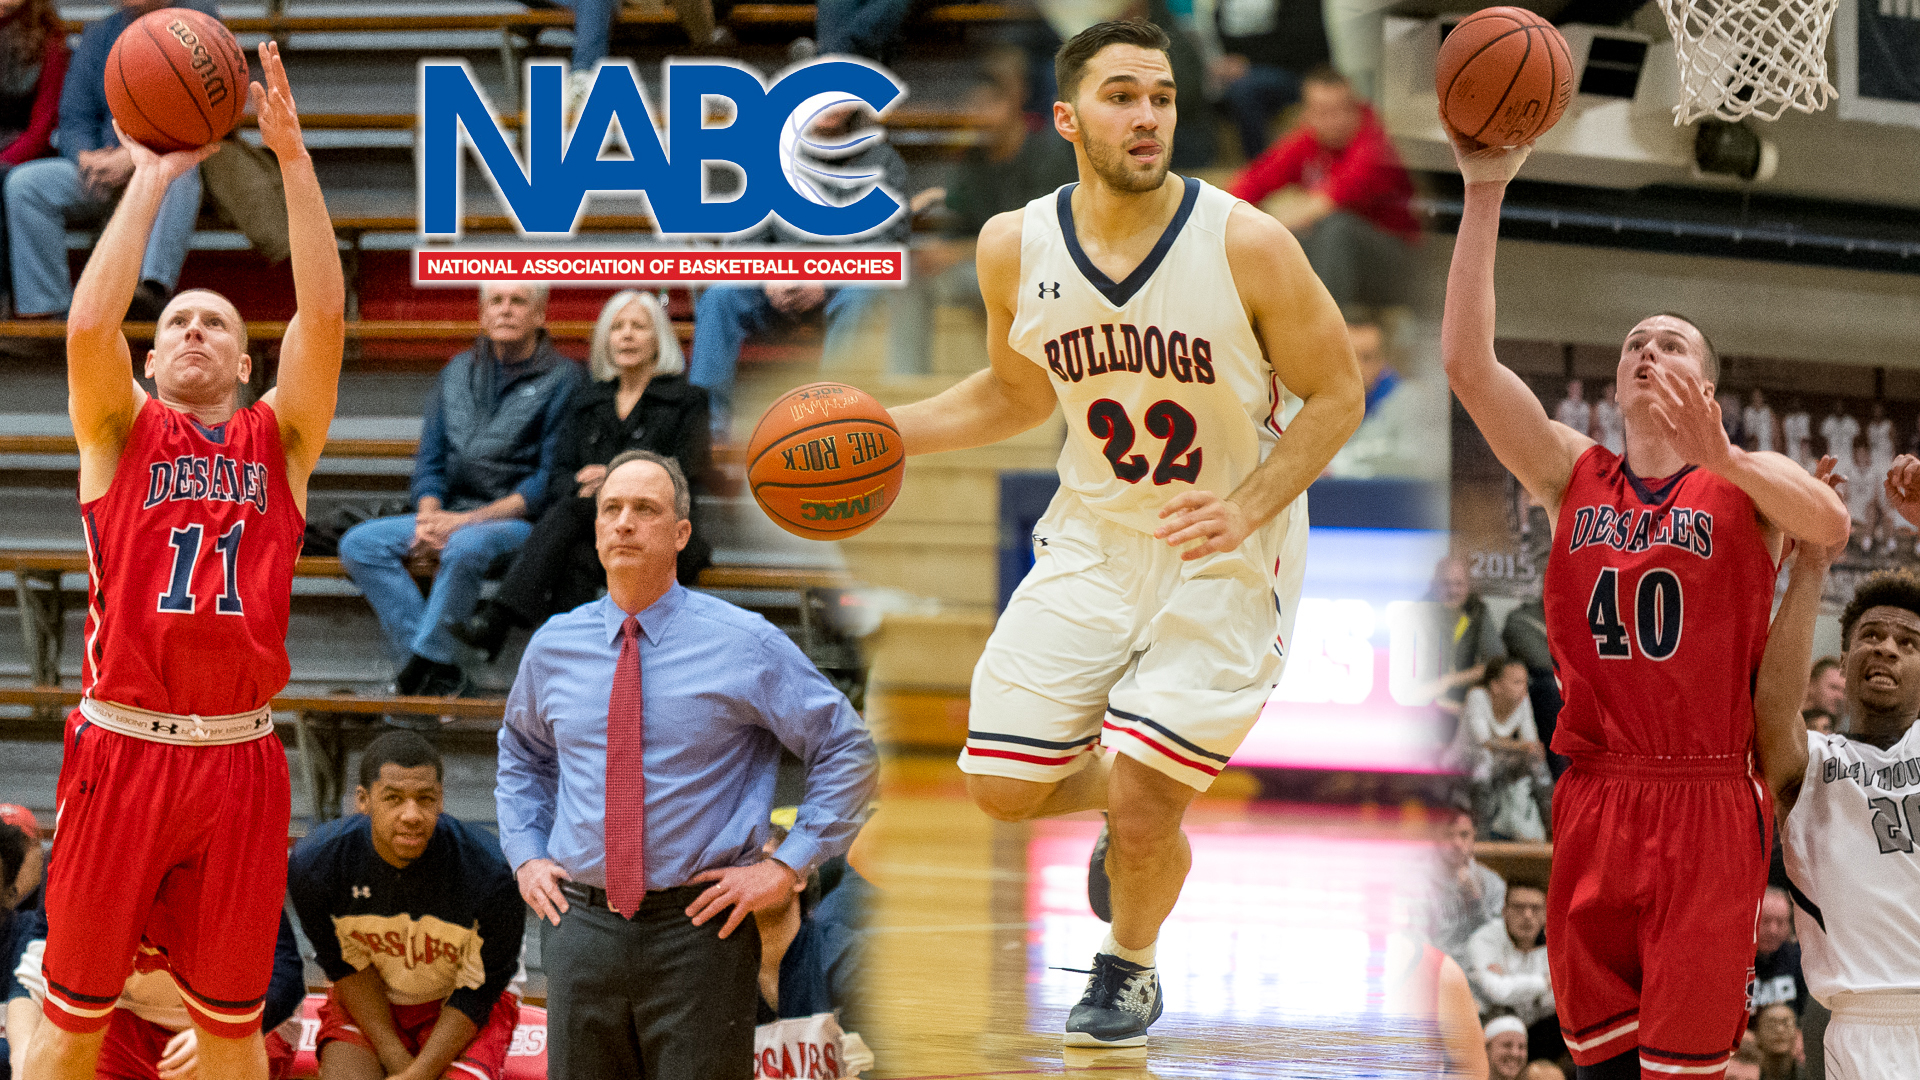 laird dalition and callahan honored by nabc desales university